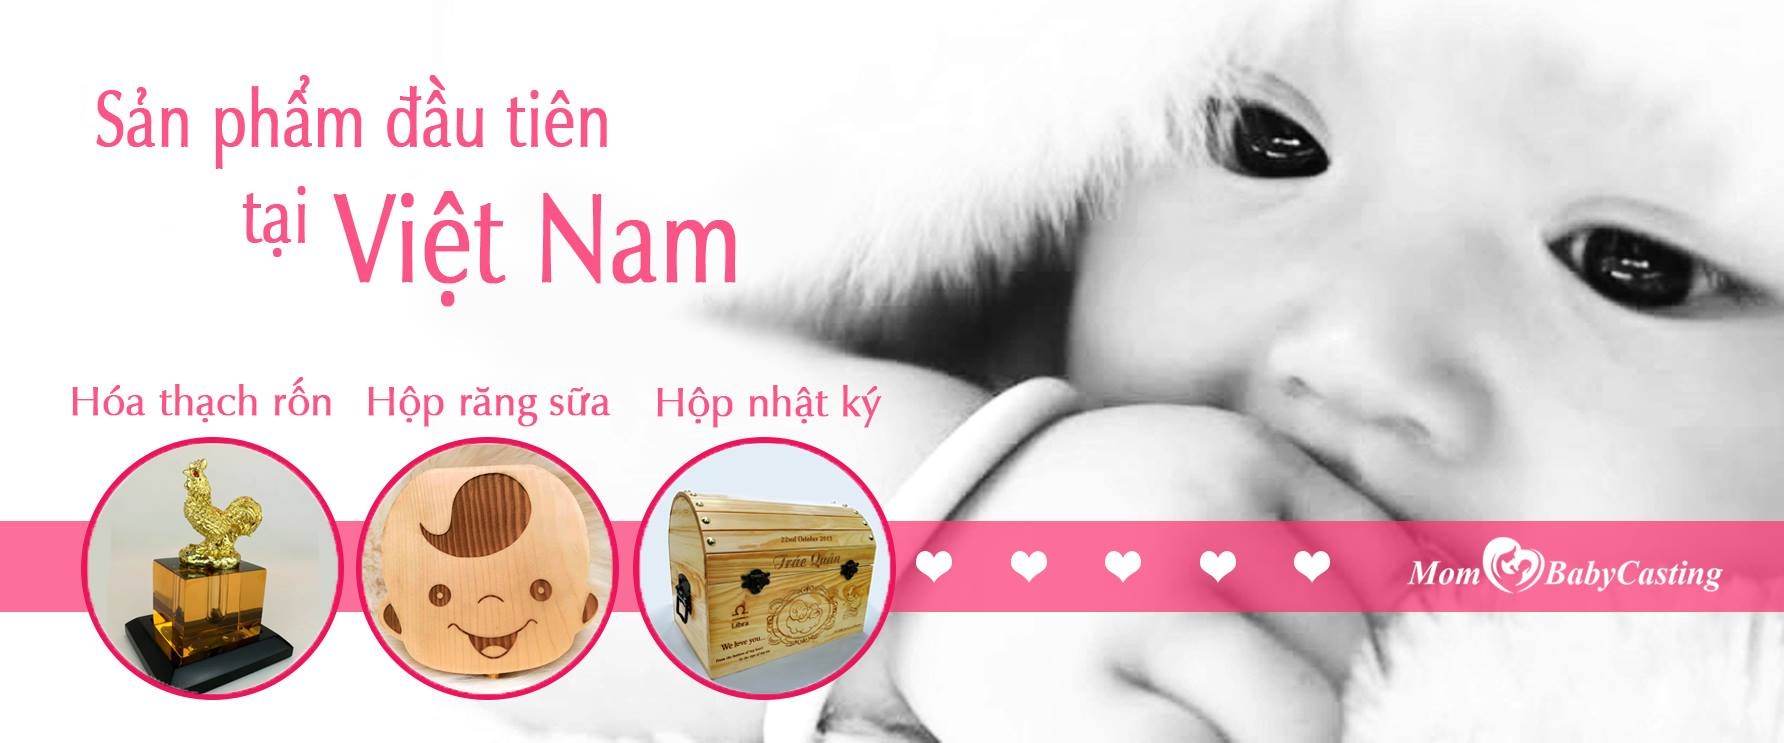 Sản phẩm Mombaby Casting